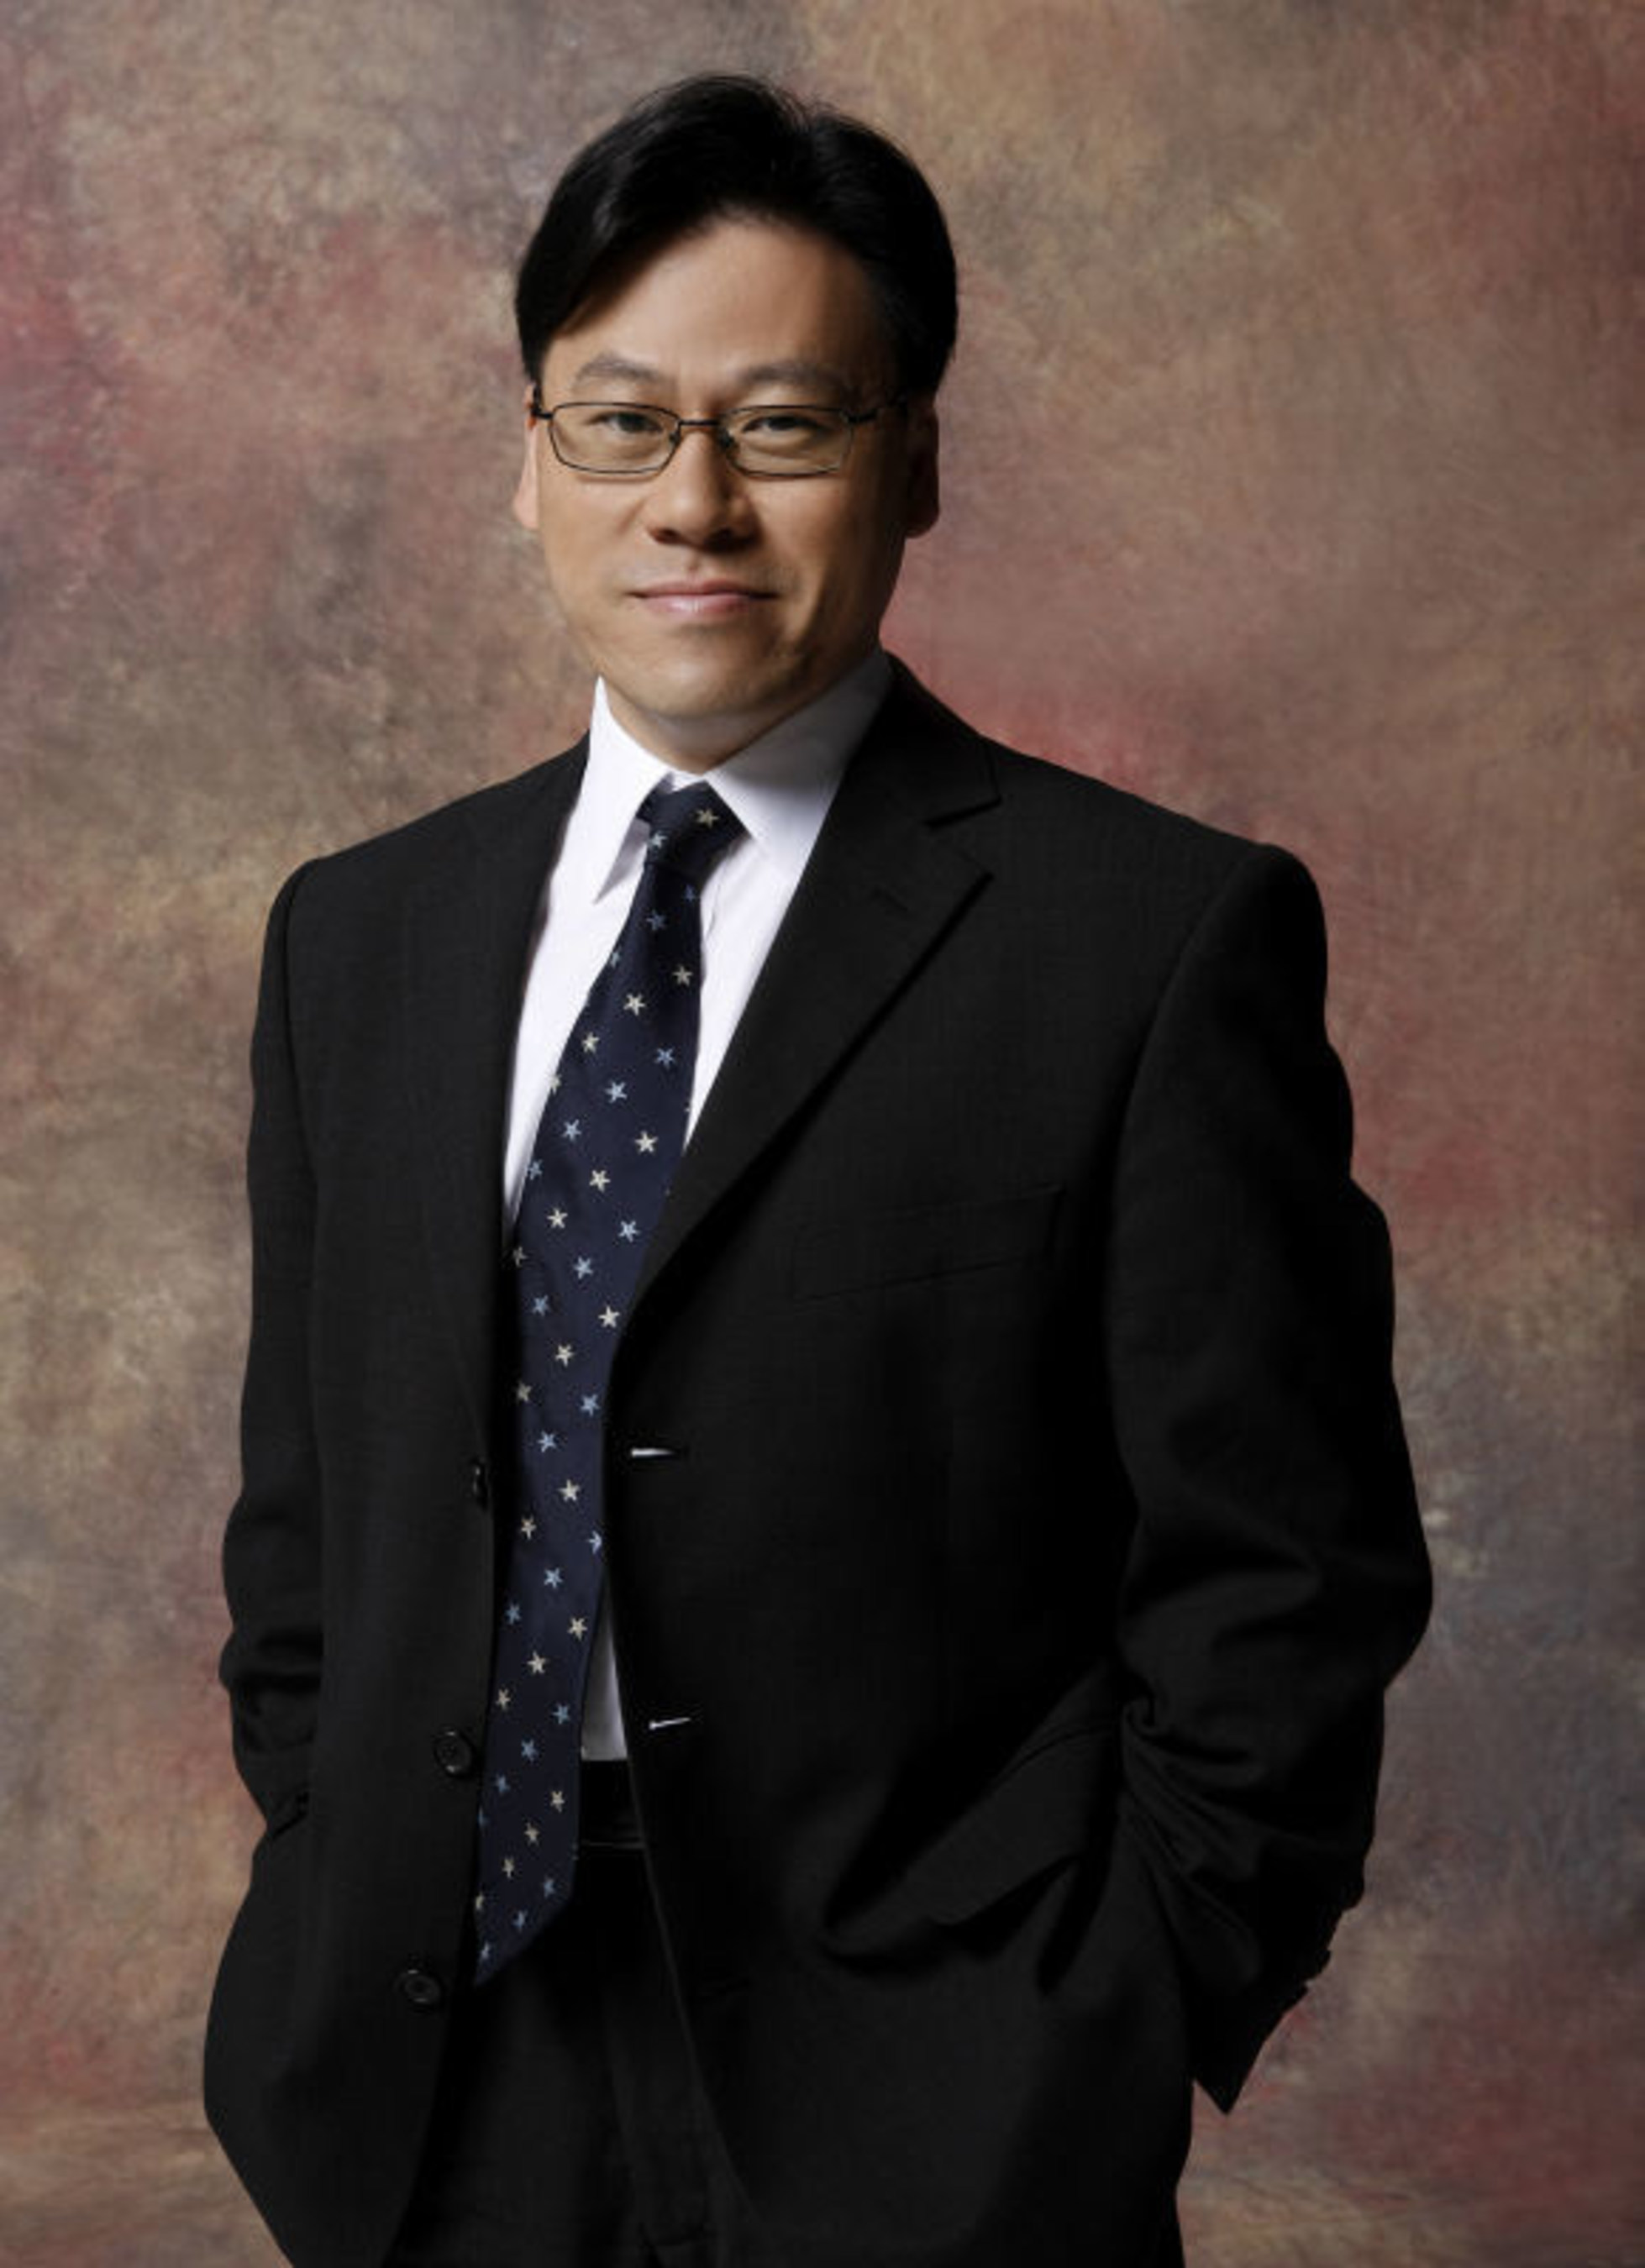 Tencent corporate vice president Steven Chang